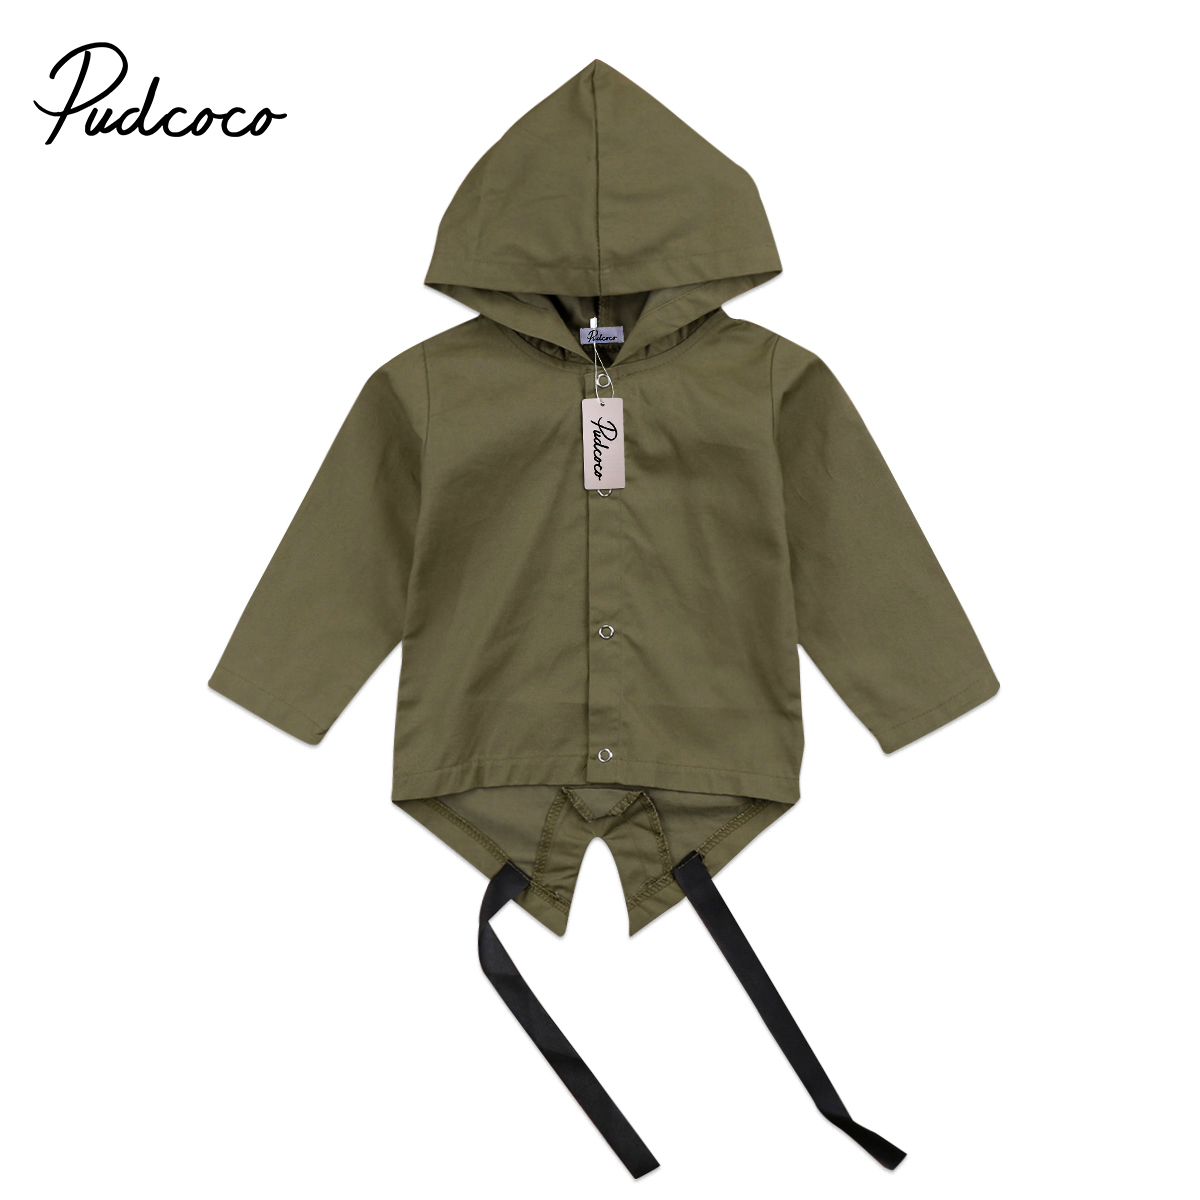 Pudcoco Newborn Baby Kids Girls Boys Long Sleeve Coat Toddler Hoodie Coat Outerwear Jacket Winter Clothing одежда на маленьких мальчиков